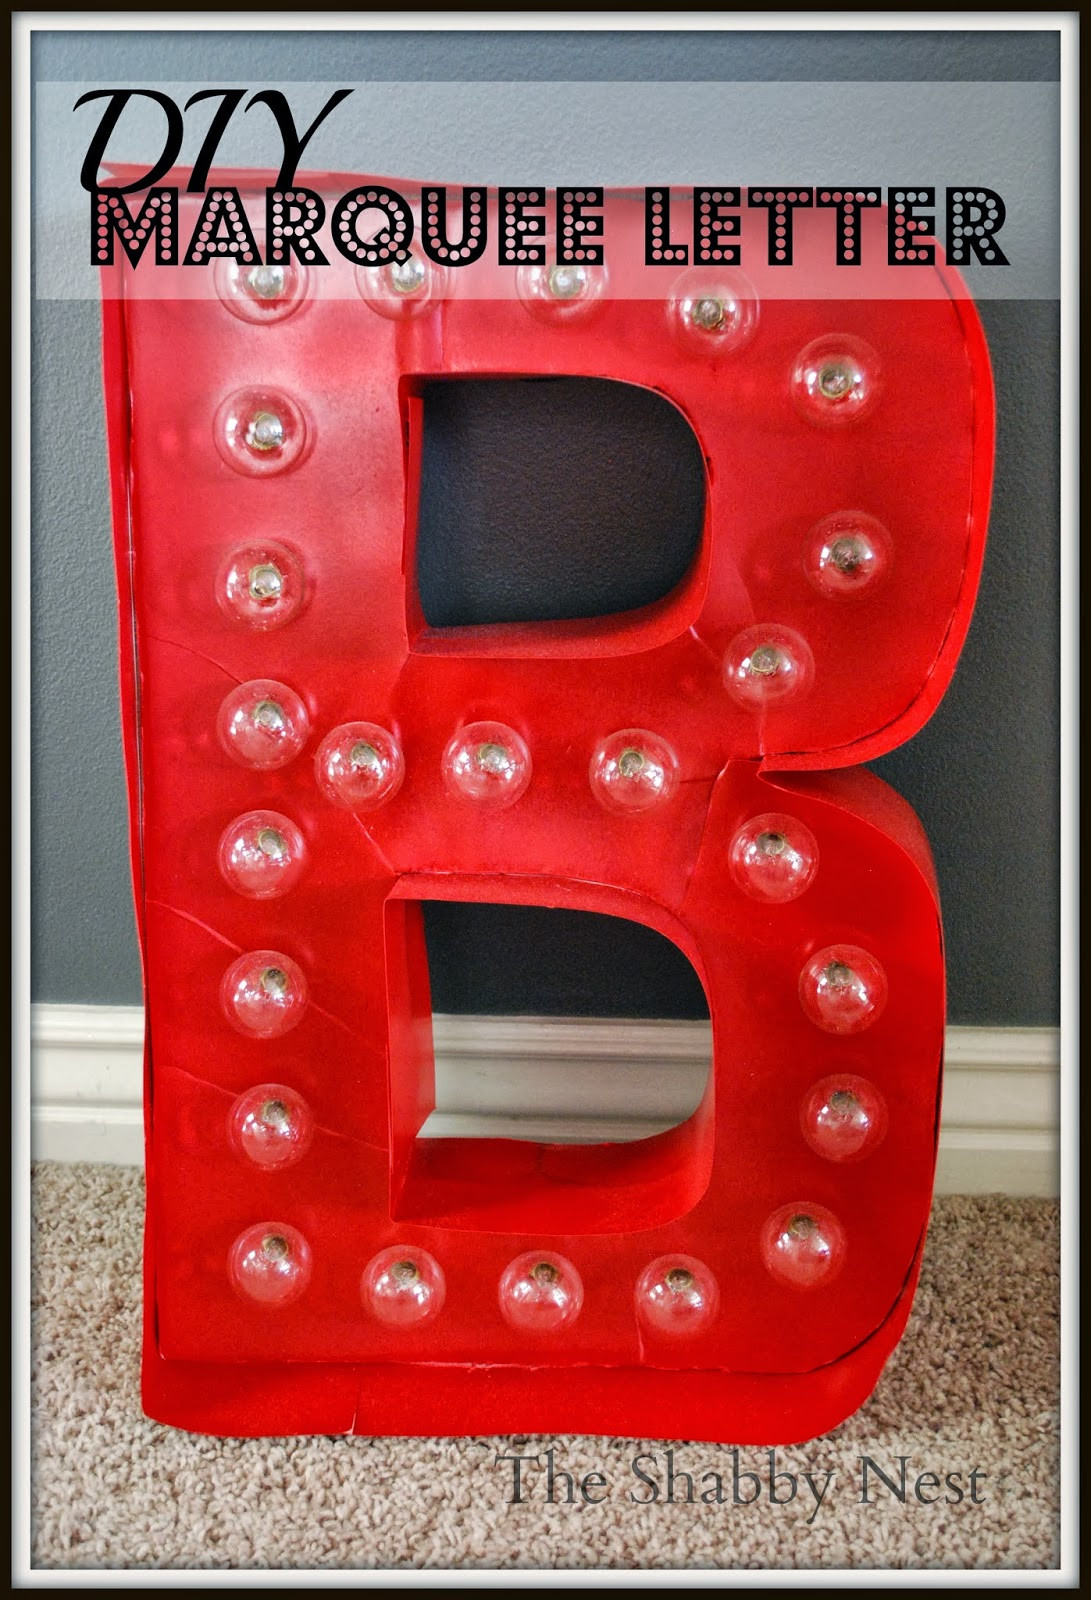 Best ideas about Light Up Letters DIY . Save or Pin The Shabby Nest DIY Light up Marquee Letter Now.